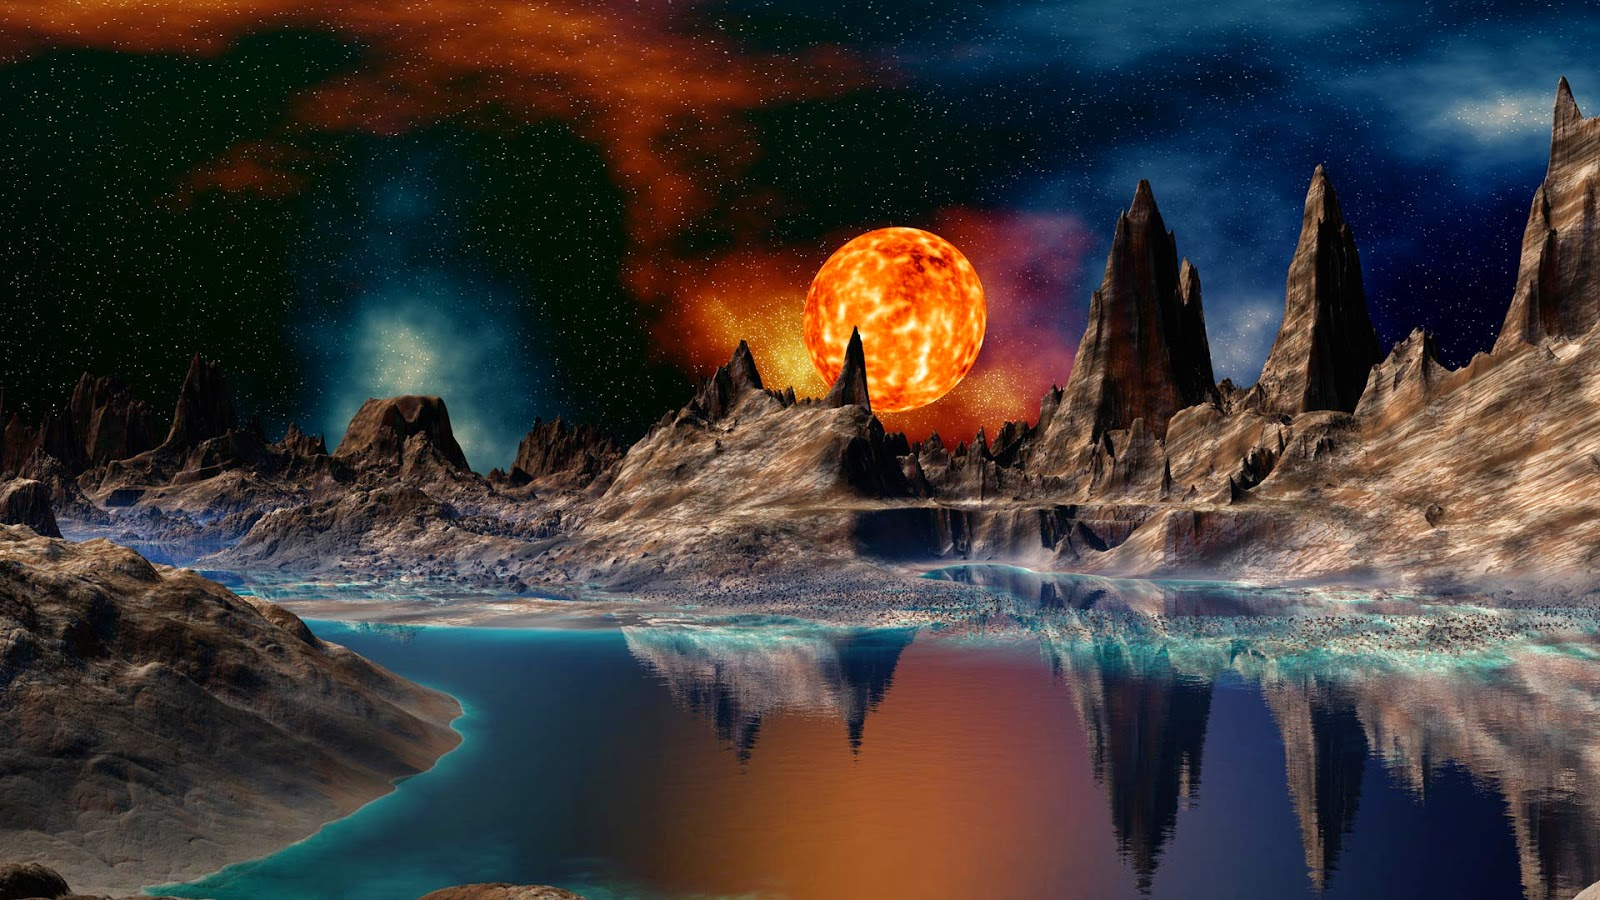 Free download software games wallpapers books android - Windows 7 wallpaper changer software ...